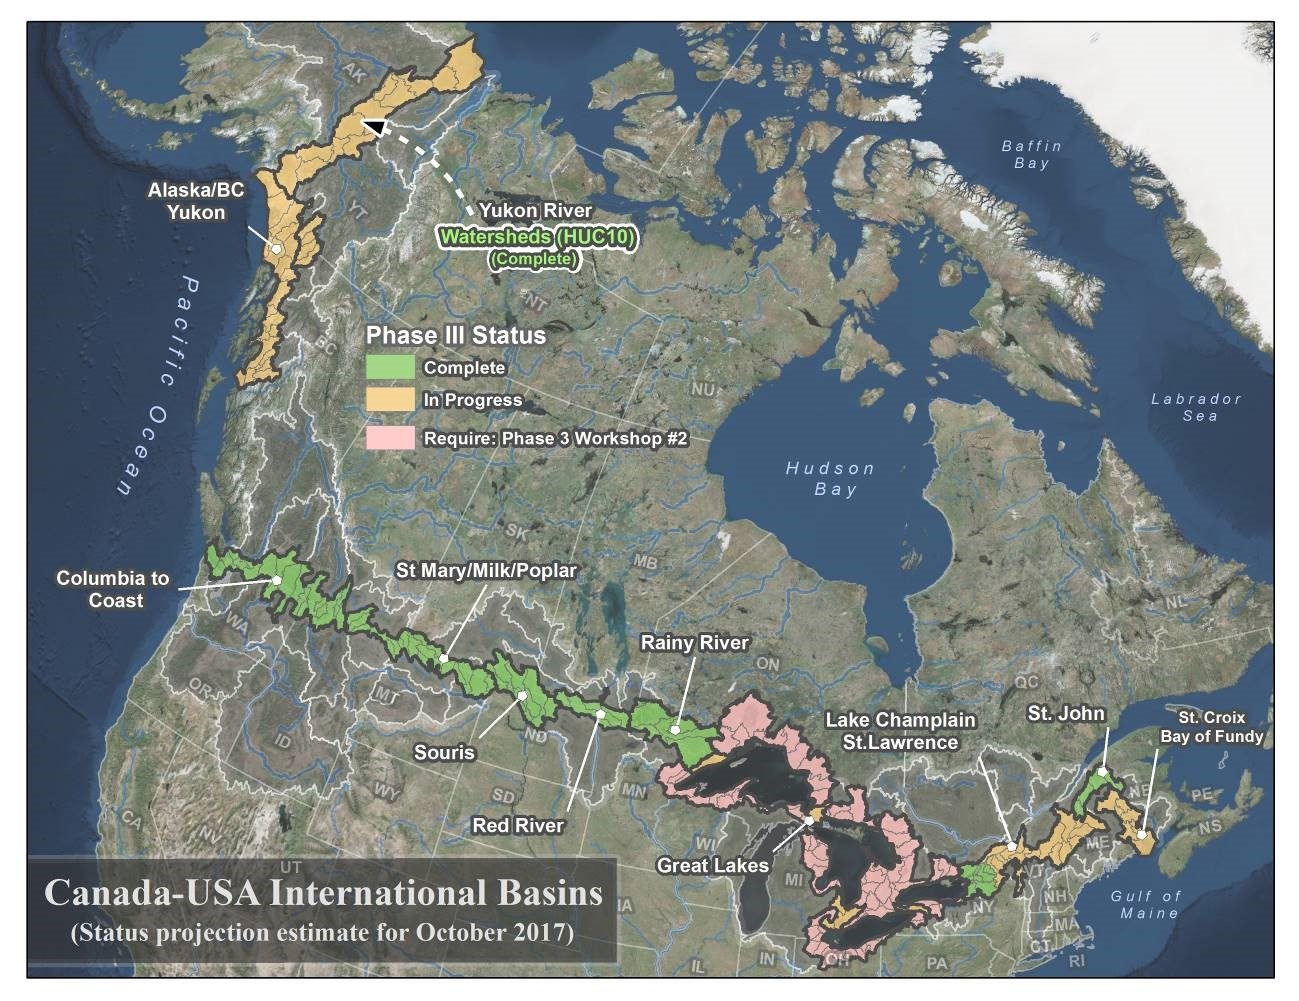 The Data Harmonization Task Force issued a status update on its projects across the transboundary during a presentation organized by the IJC in Ottawa in October 2017. Credit: US Geological Survey and Environment and Climate Change Canada